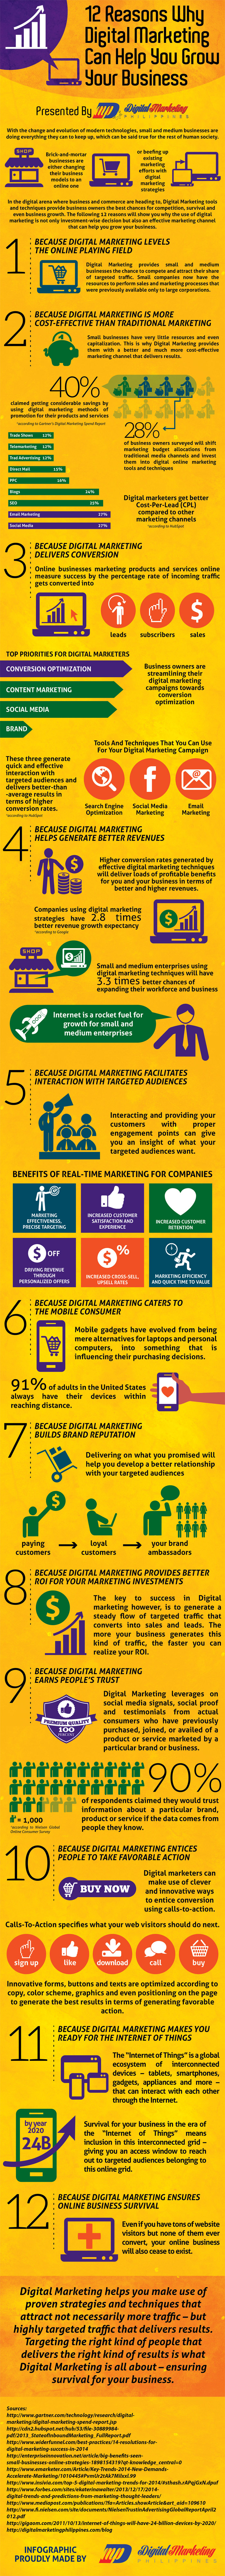 12-Reasons-Why-Digital-Marketing-Can-Help-You-Grow-Your-Business